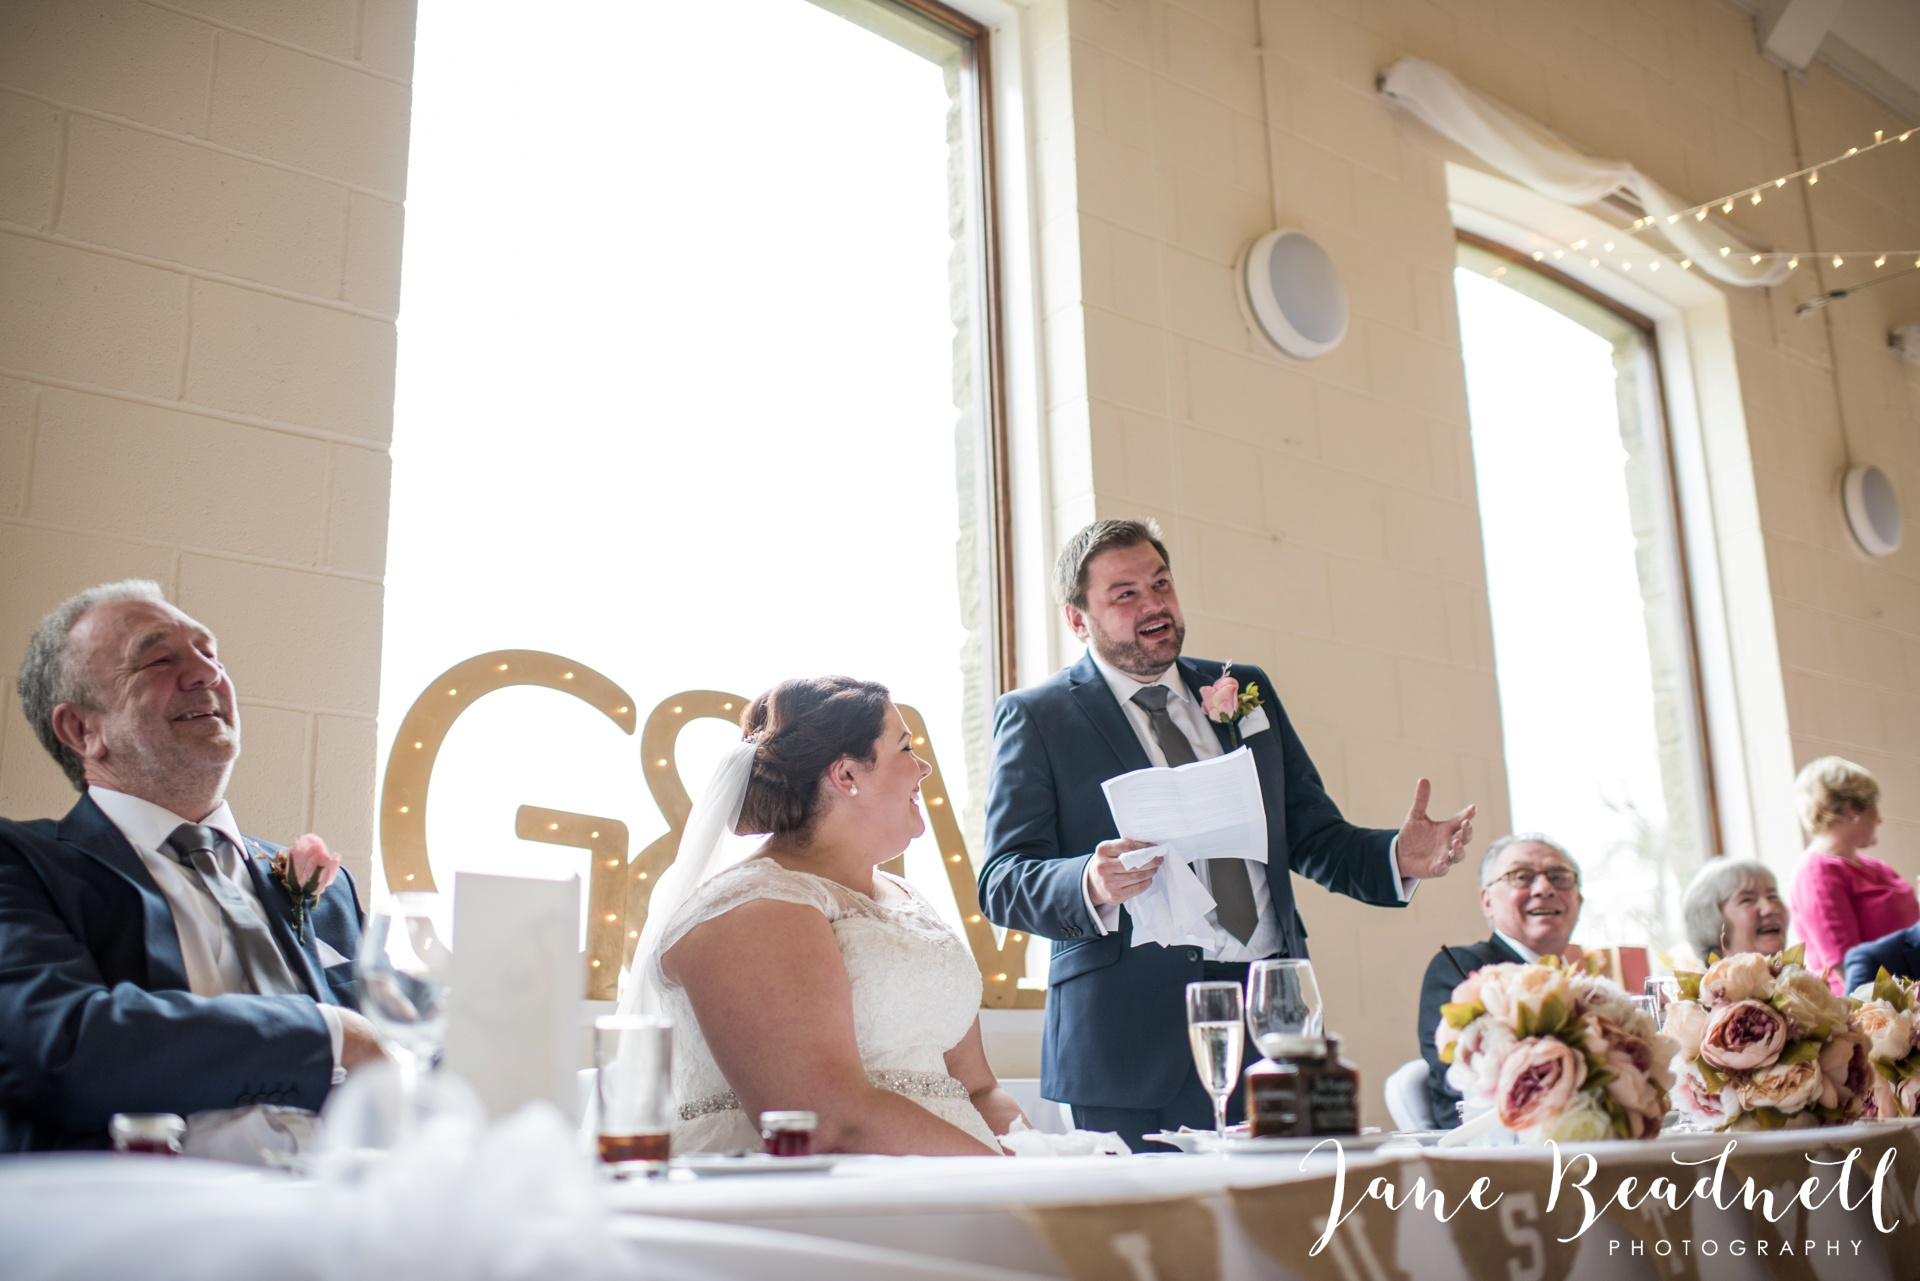 Cracoe Village Hall Wedding Photography by Jane Beadnell Photography fine art wedding photographer Yorkshire_0071